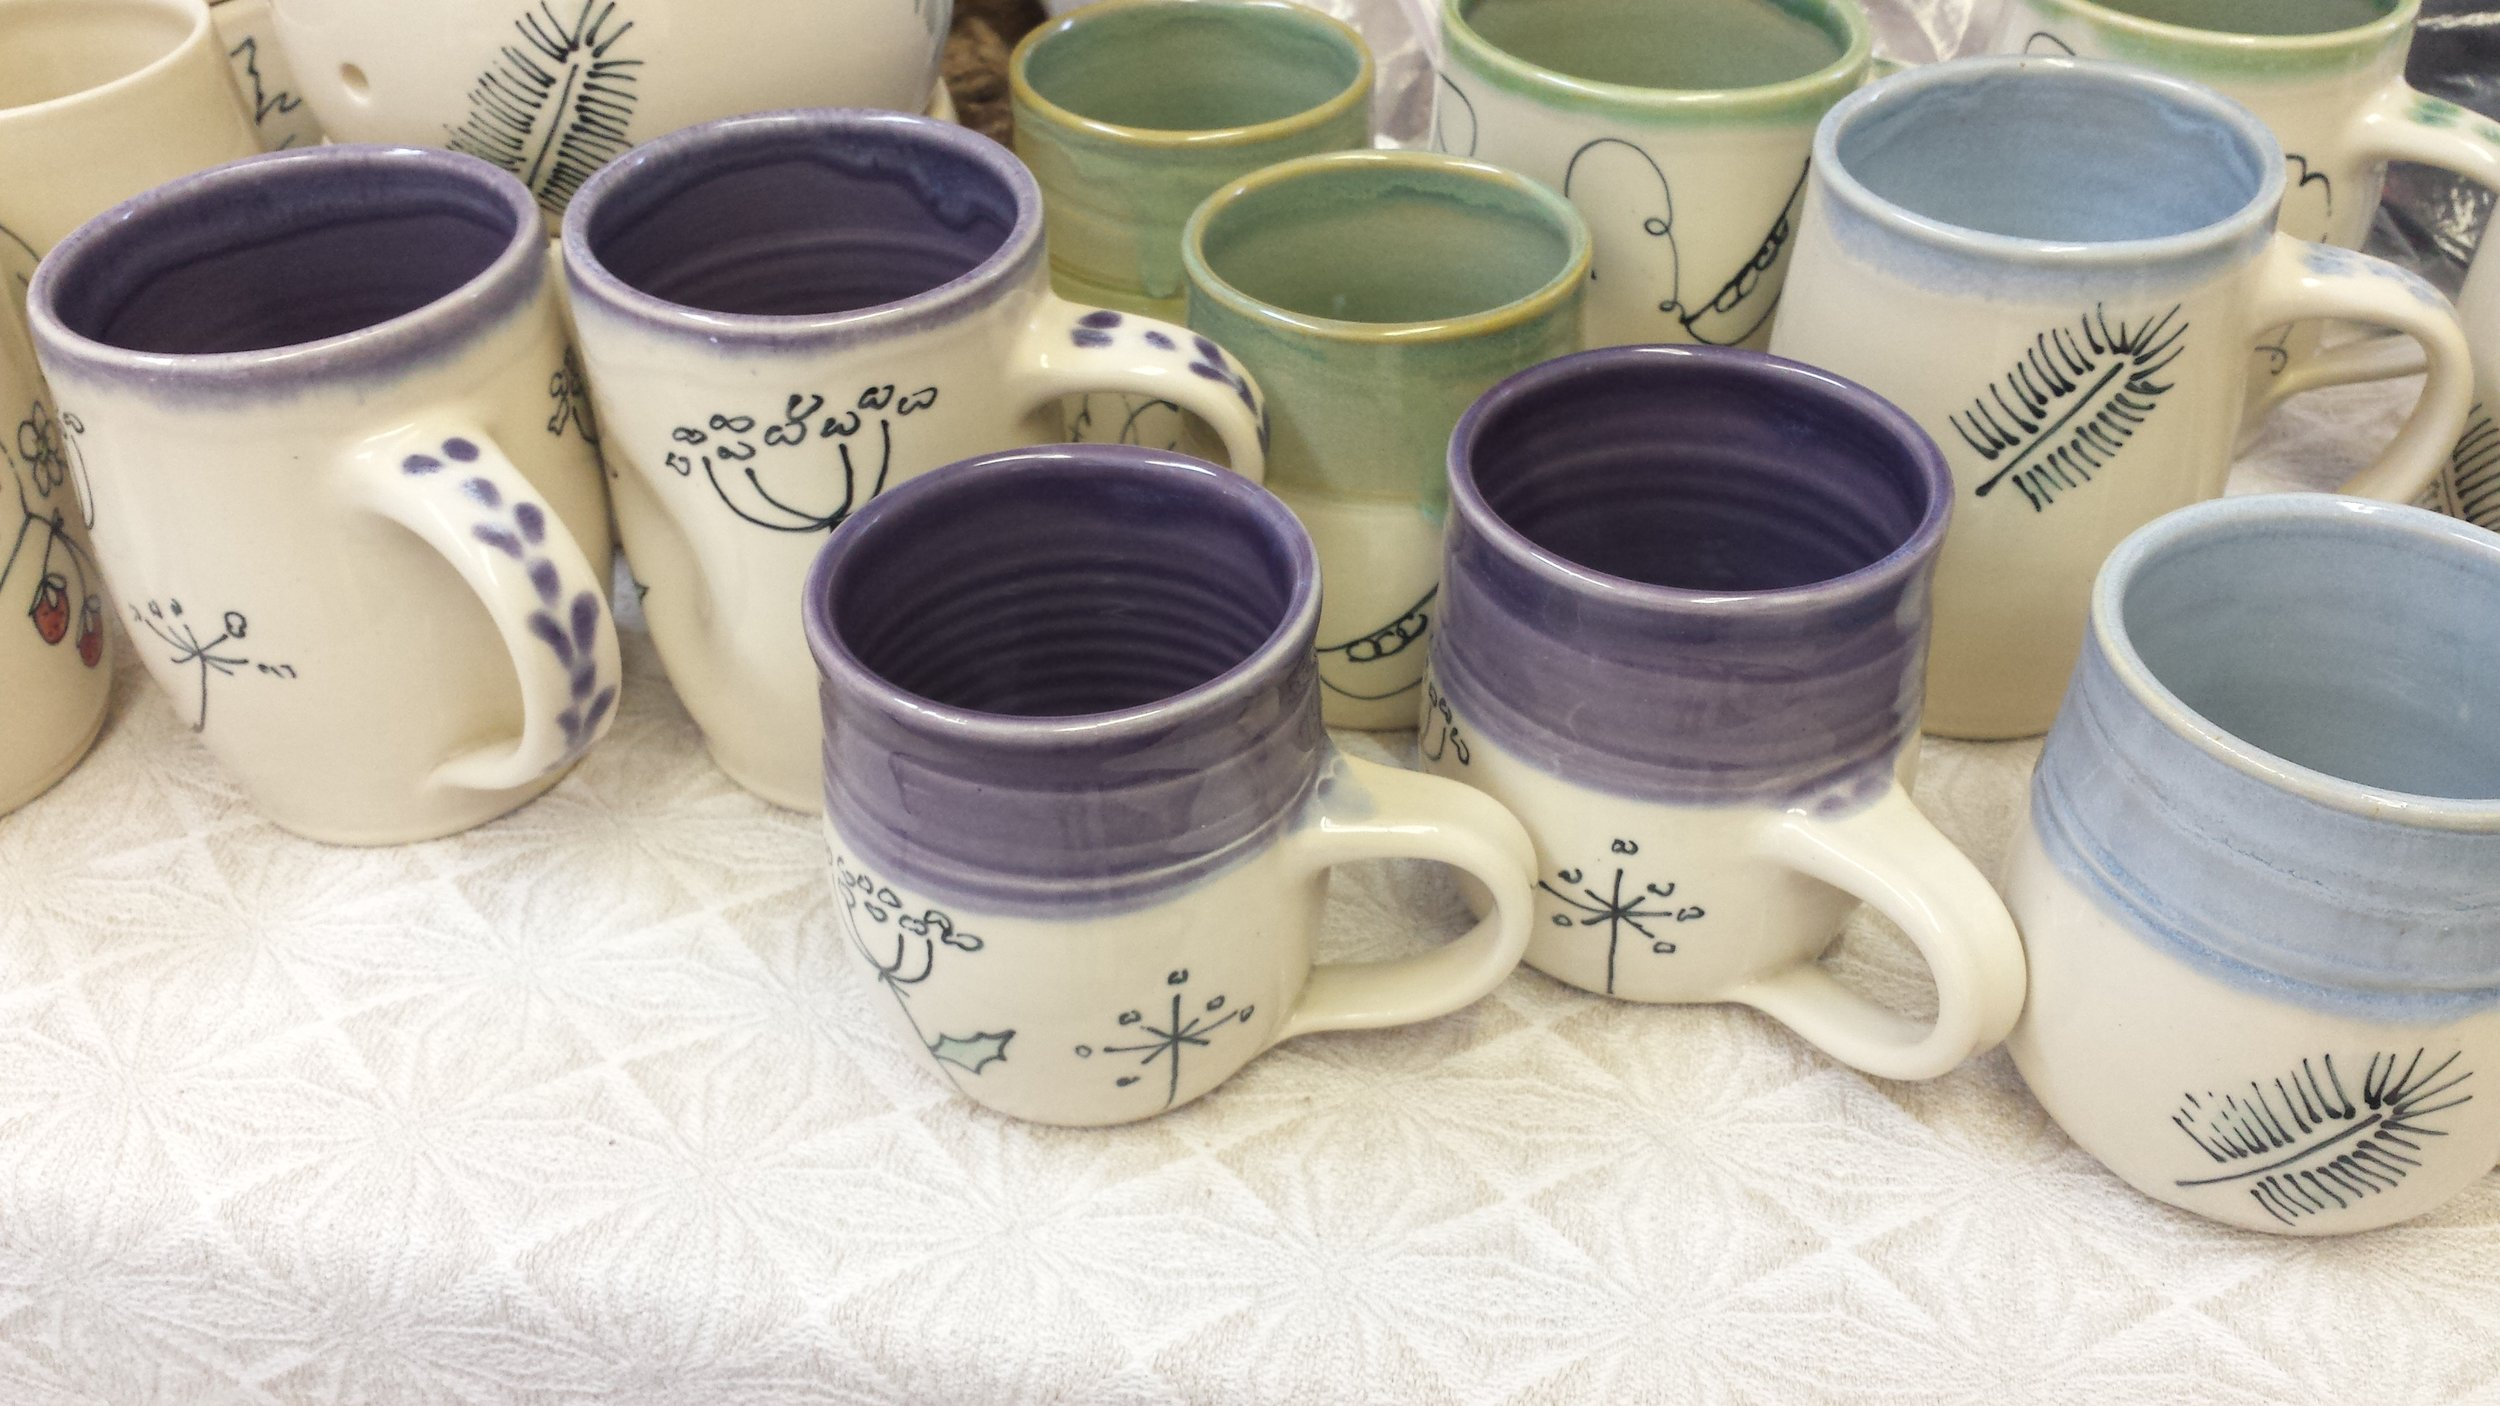 Some new mugs amongst other gift items....these are by Anne Pryde and match the yarn bowls that I have carry....a lovely gift idea for the upcoming season (or anytime)